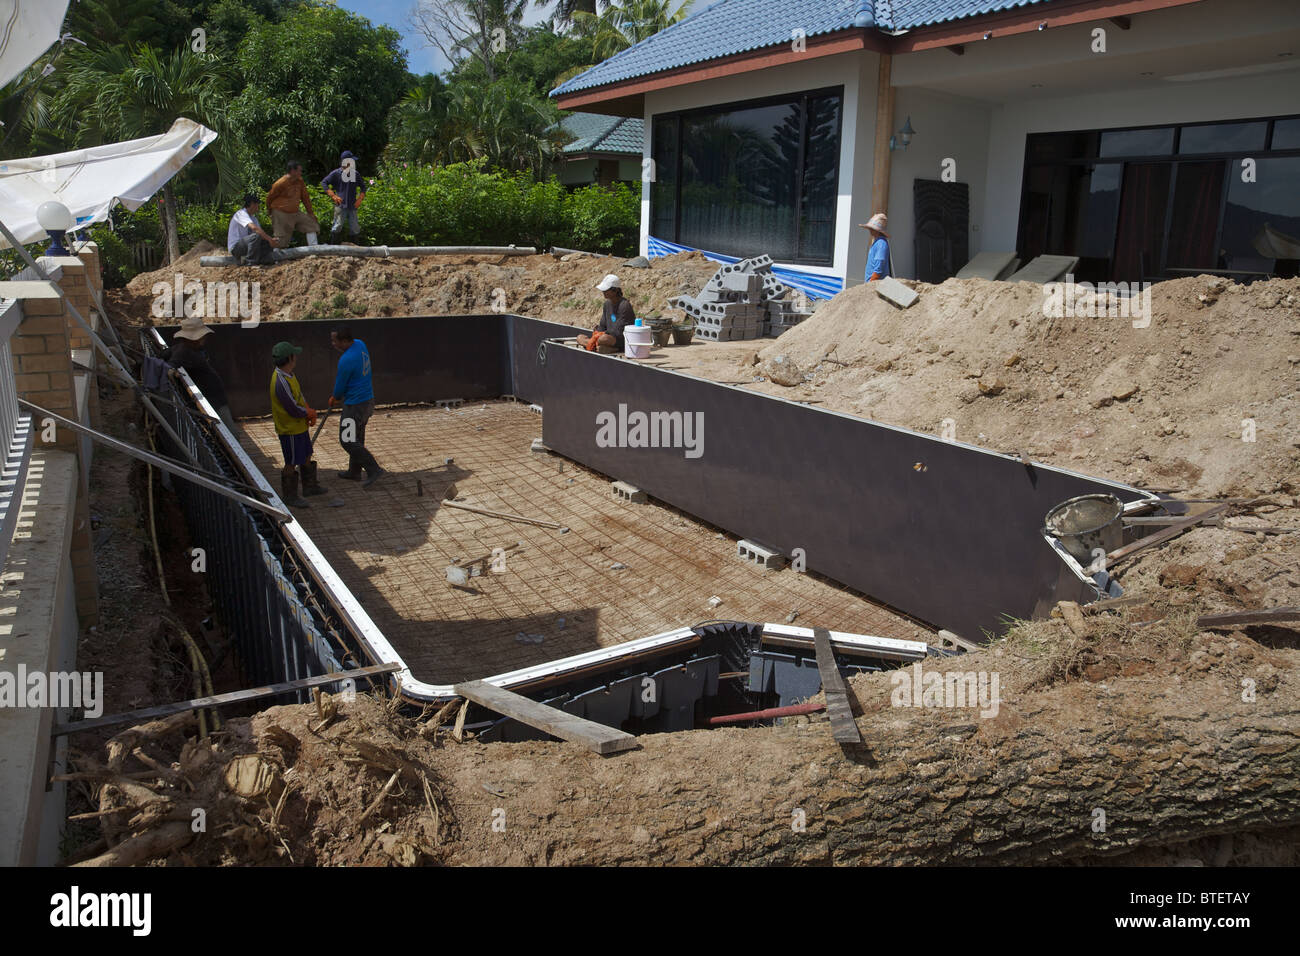 A swimming pool being built in phuket thailand stock for Built in swimming pools